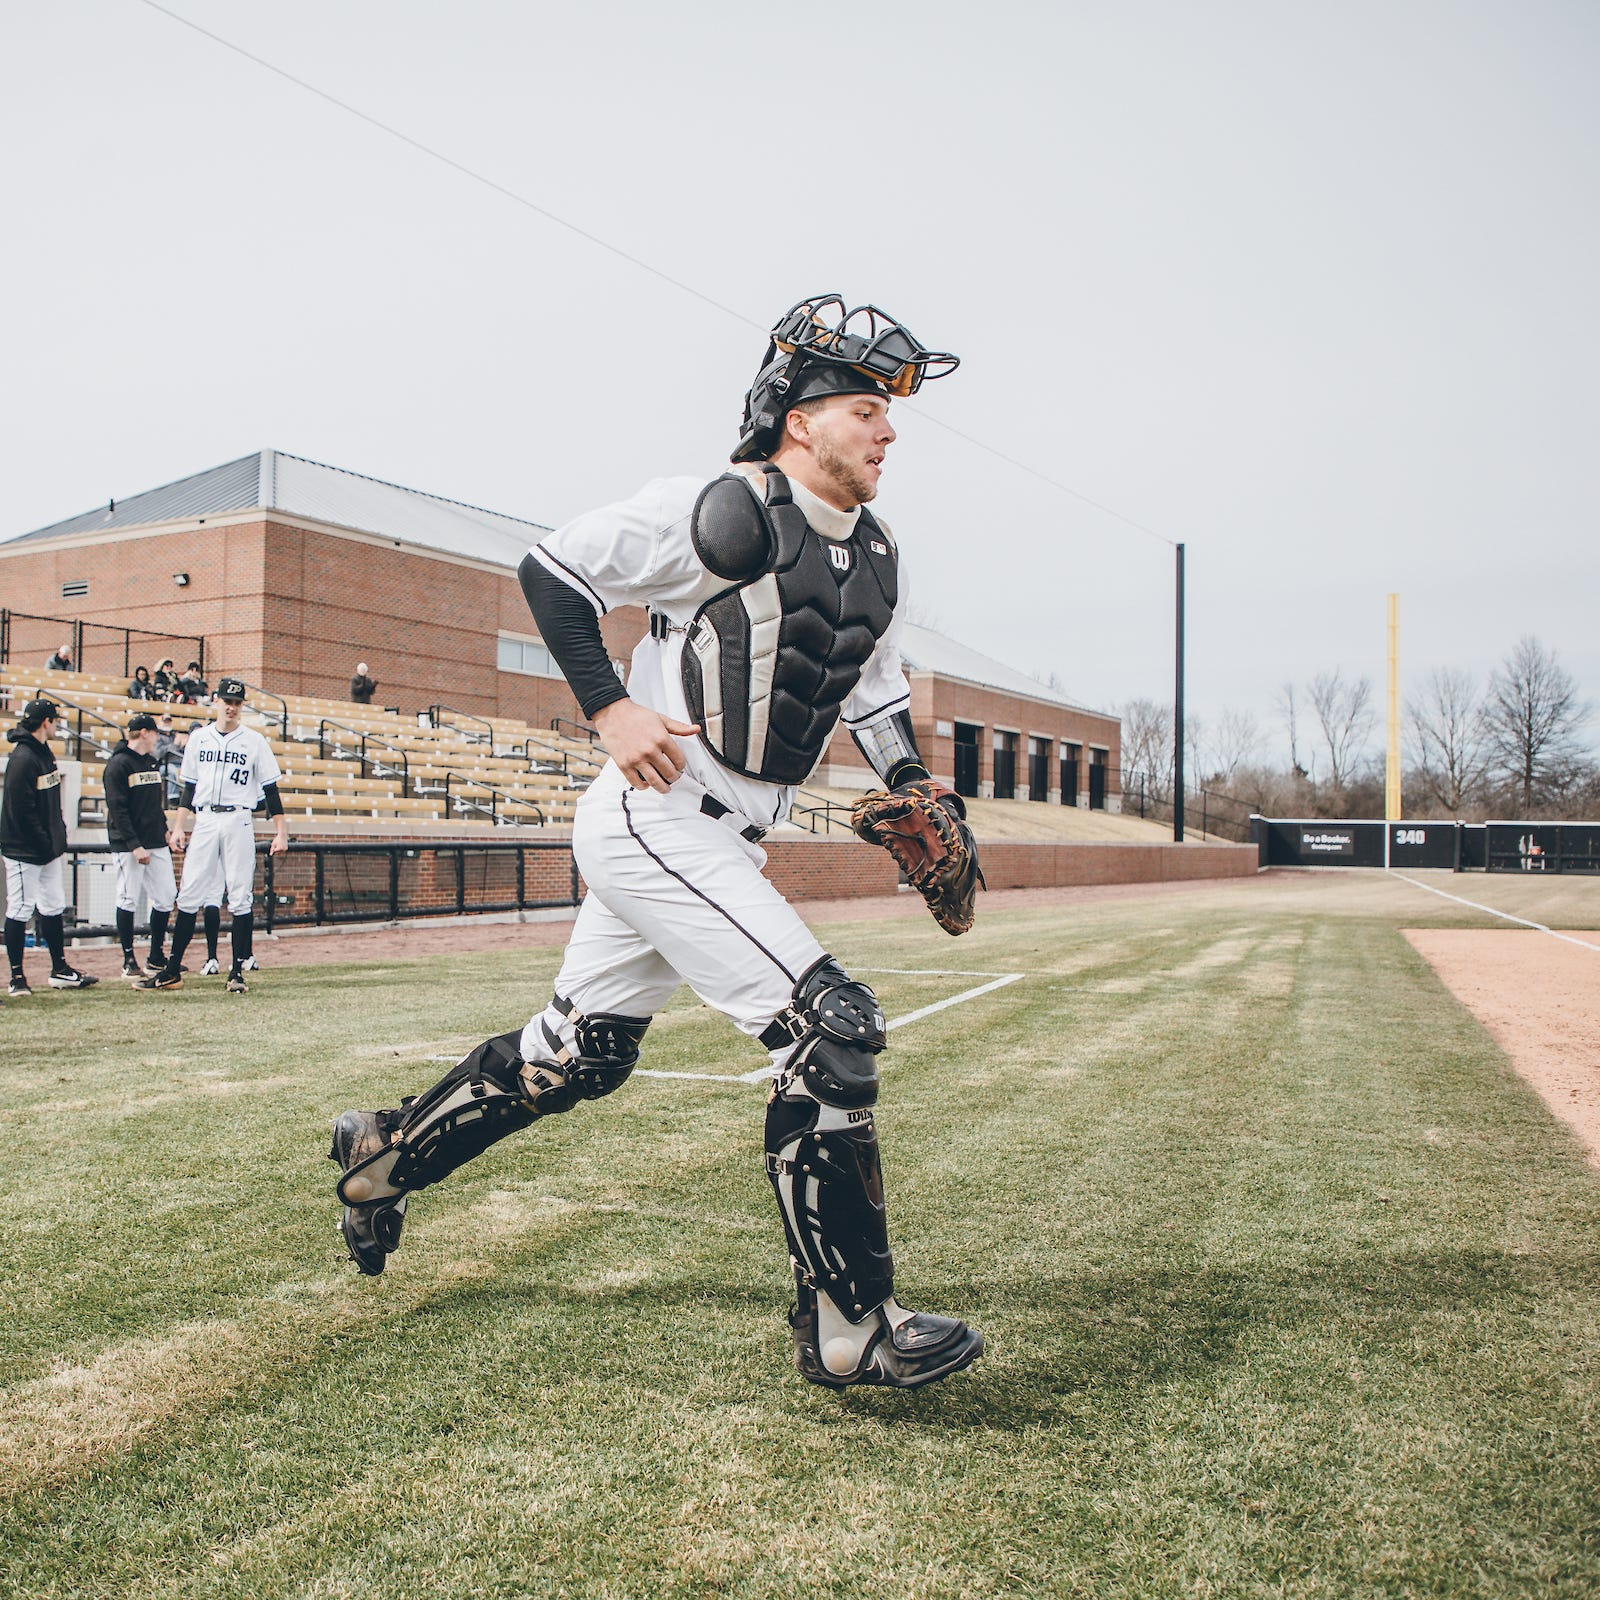 Purdue baseball's Zac Fascia moved from between the pipes to behind the plate